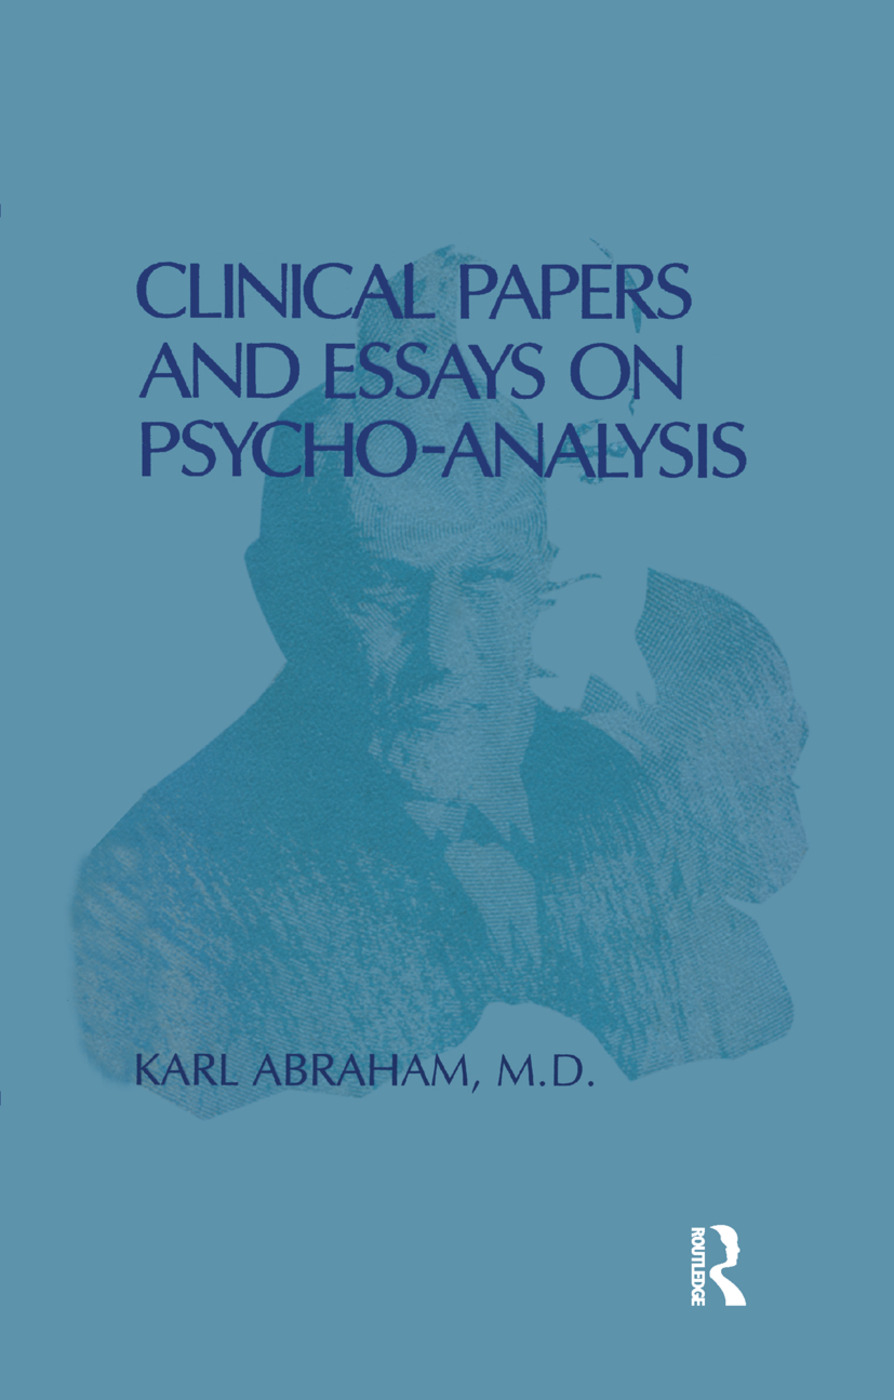 Clinical Papers and Essays on Psychoanalysis